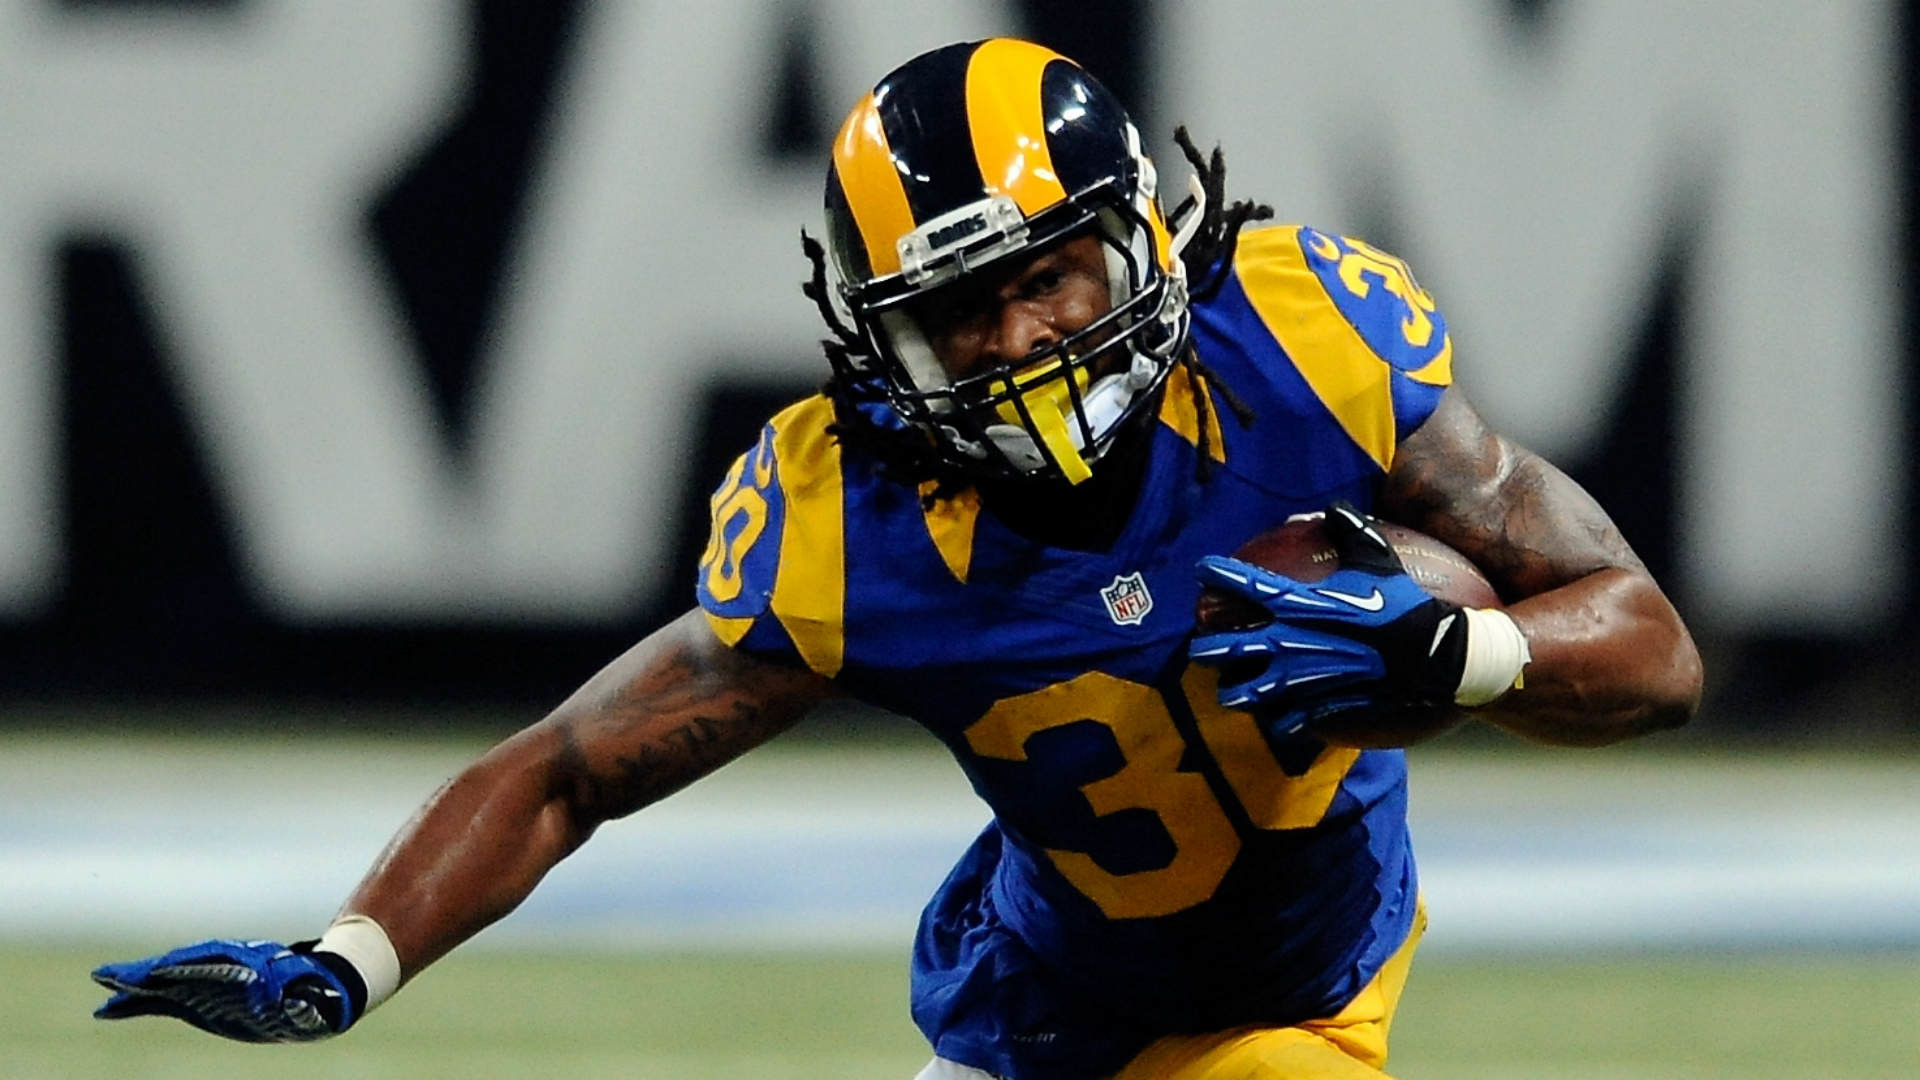 Sporting News NFL Rookie of the Year: Todd Gurley rescuing Rams, RB  position   NFL   Sporting News